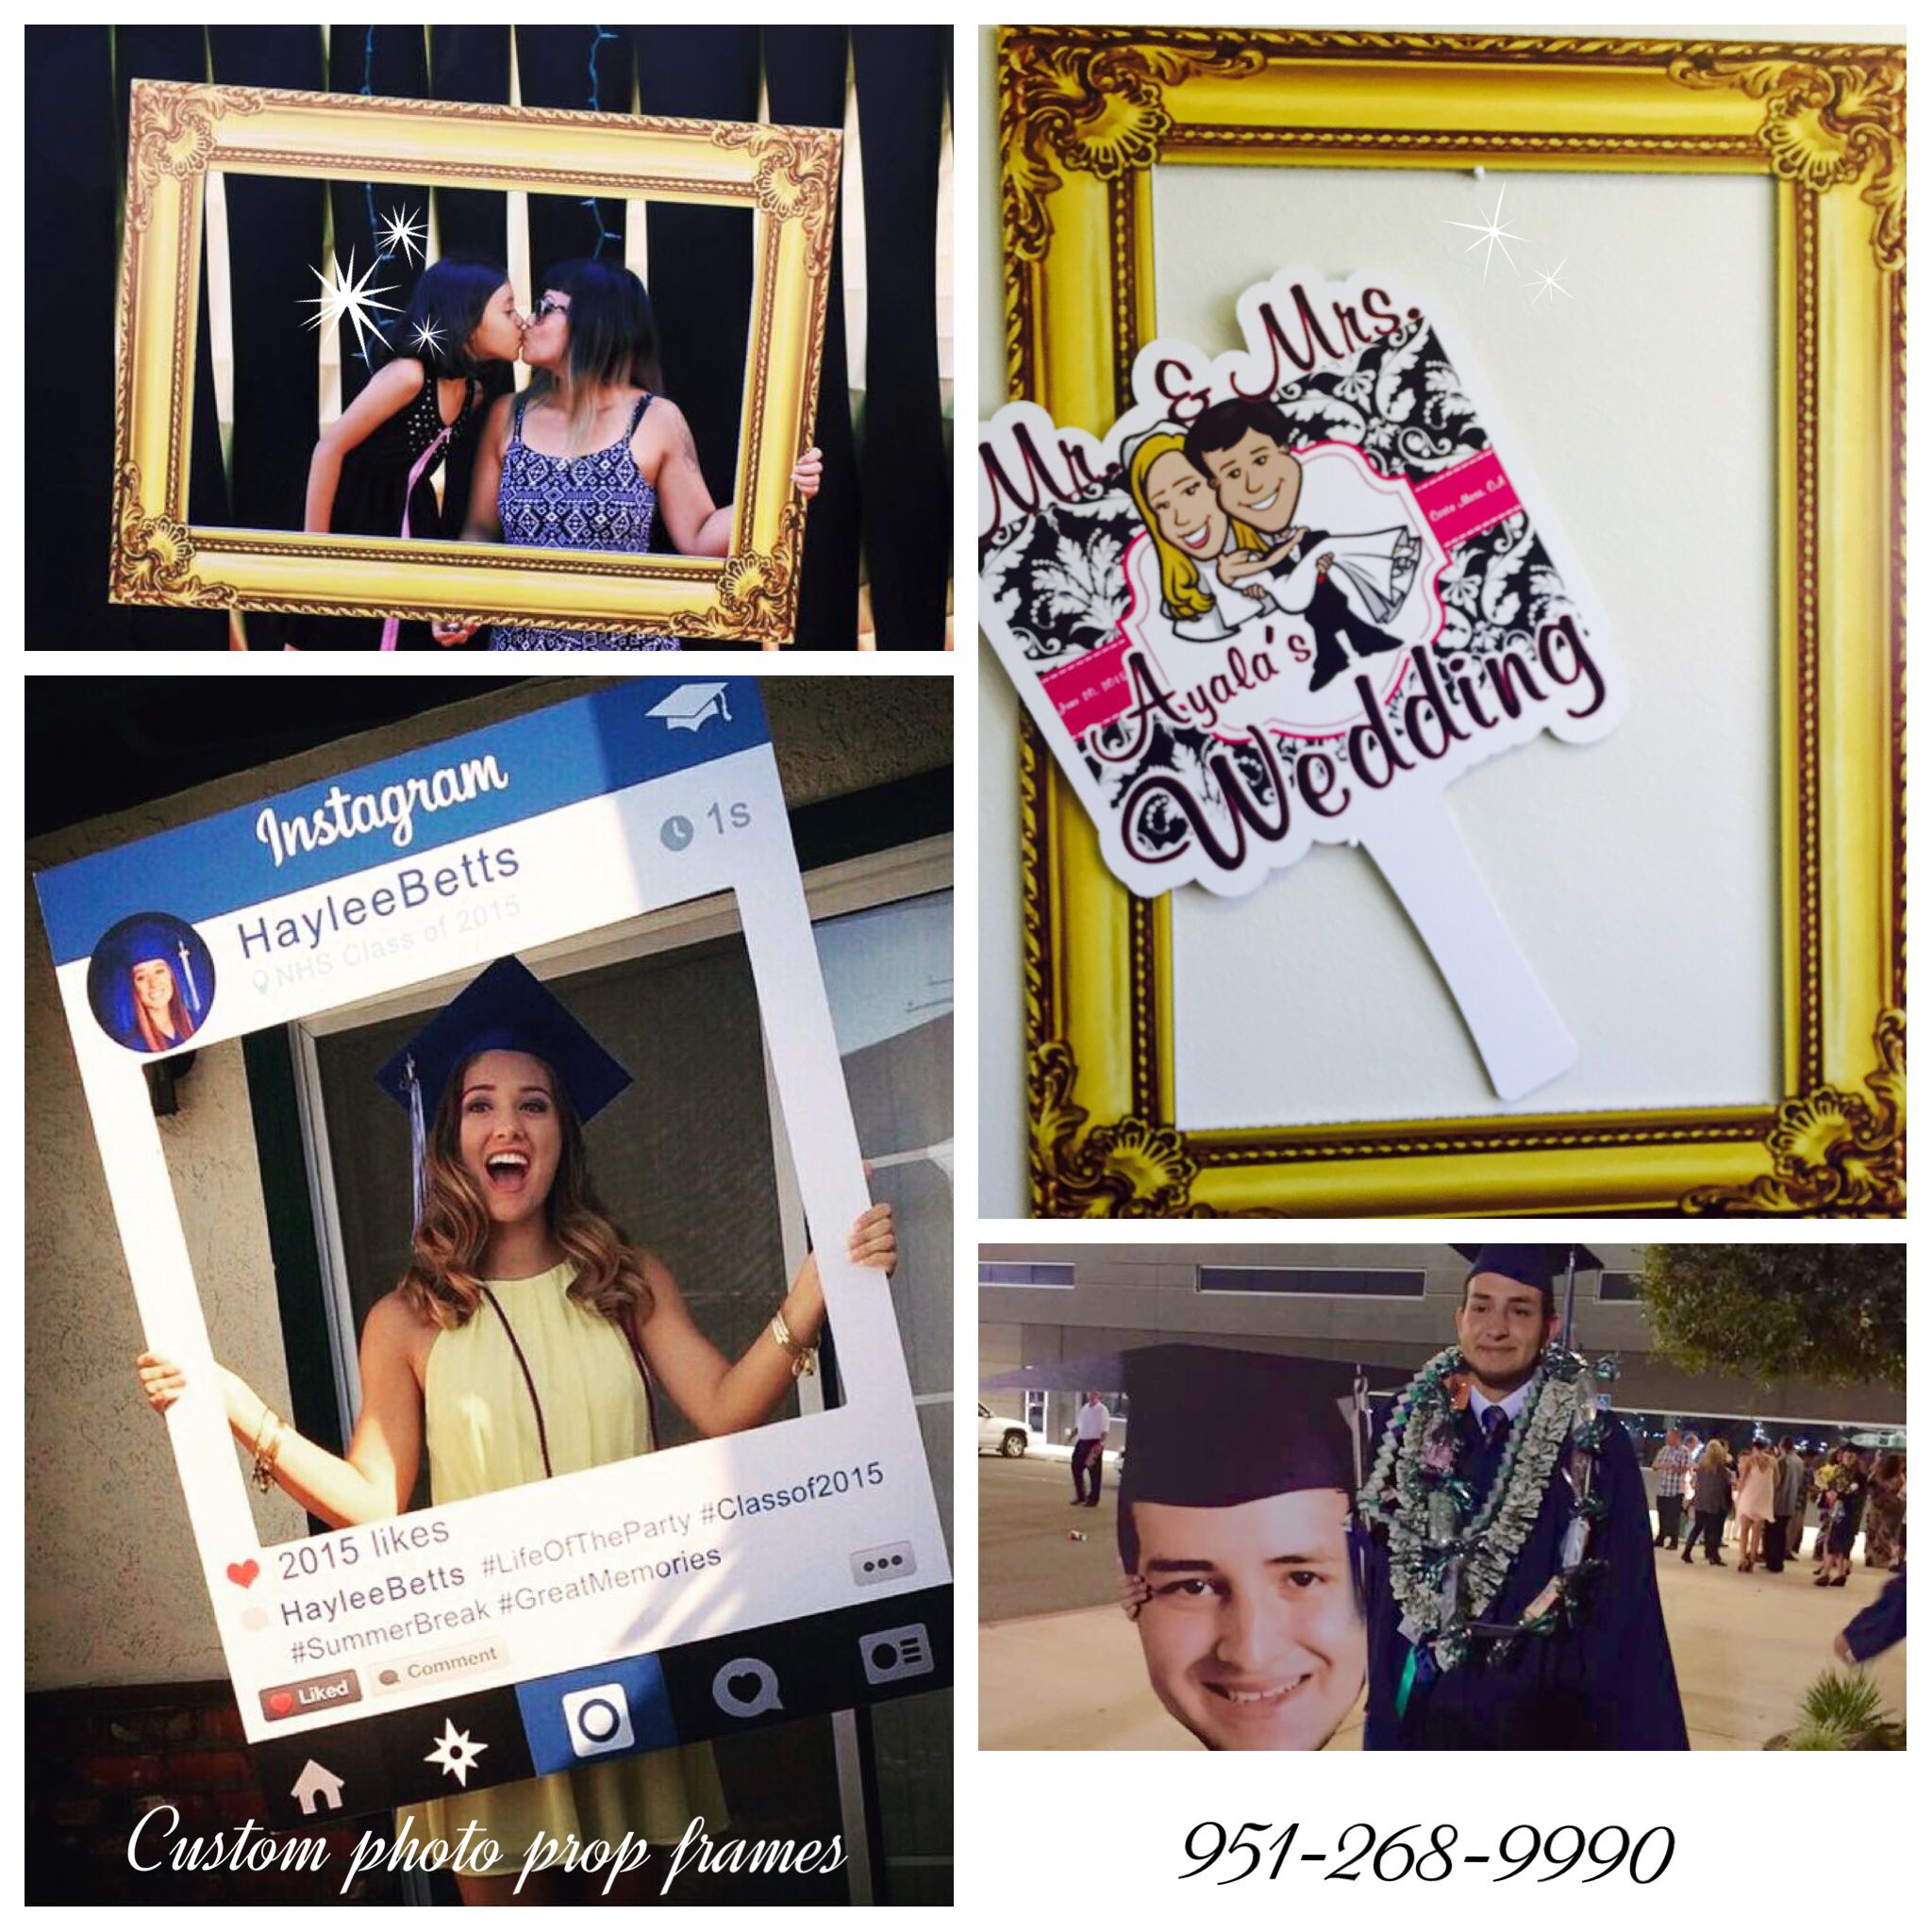 custom instagram frames get you or your business noticed great for parties and photo booth